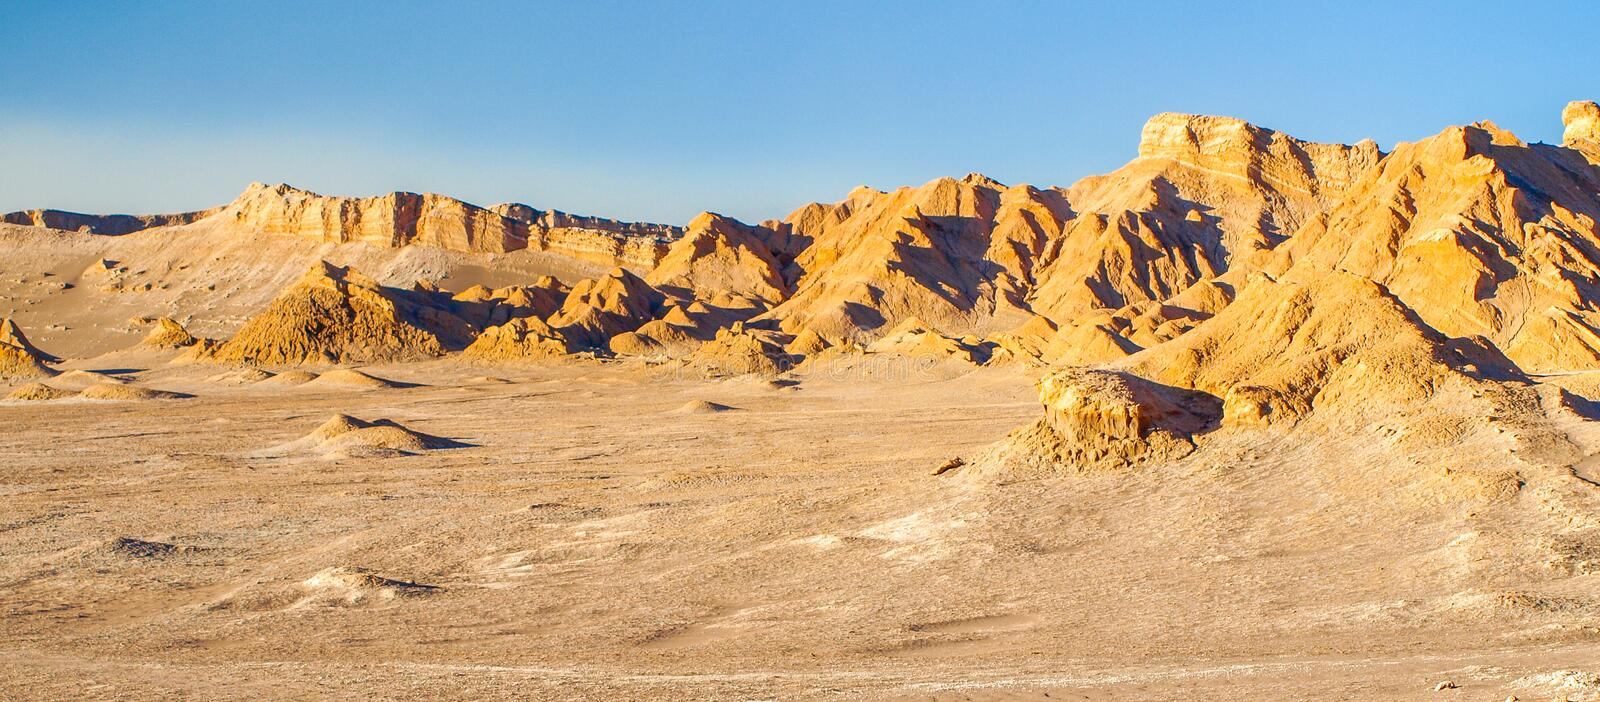 Death valley od Atacama Desert near San Pedro de Atacama, Chile stock photography